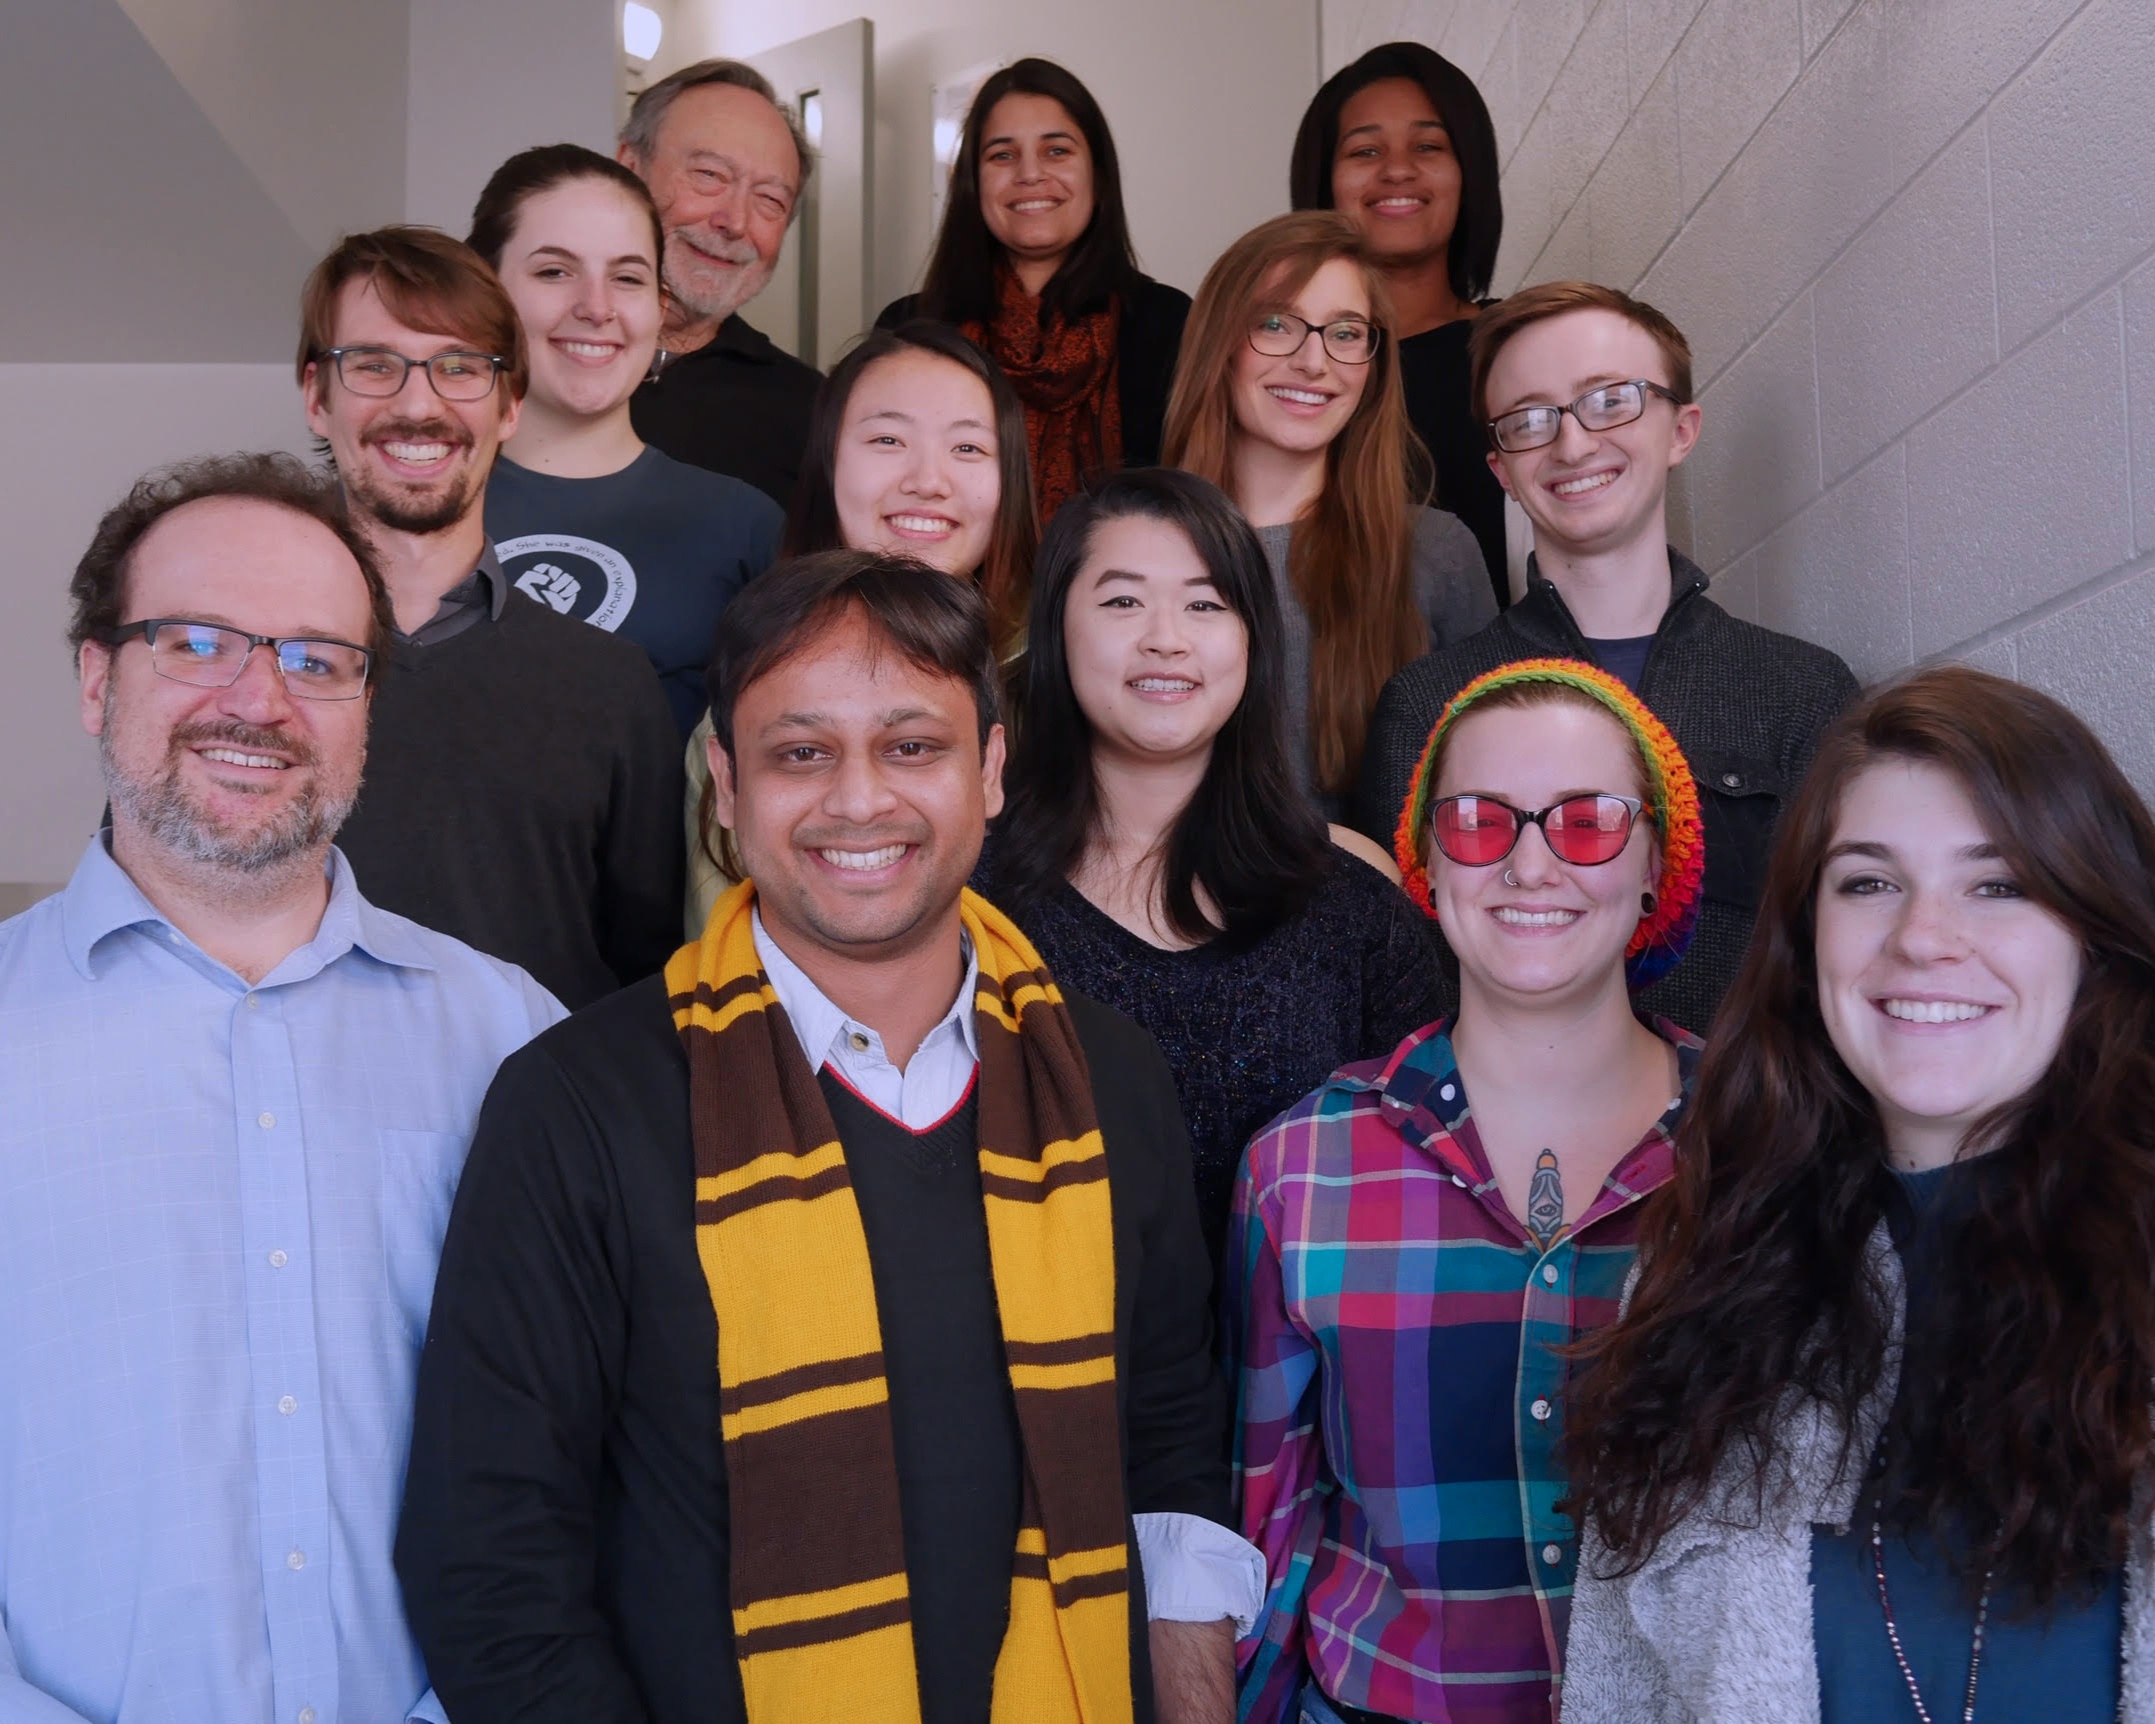 people - Our team is made up of a diverse group of researchers and students, each bringing their own unique skill set and perspective into our research.